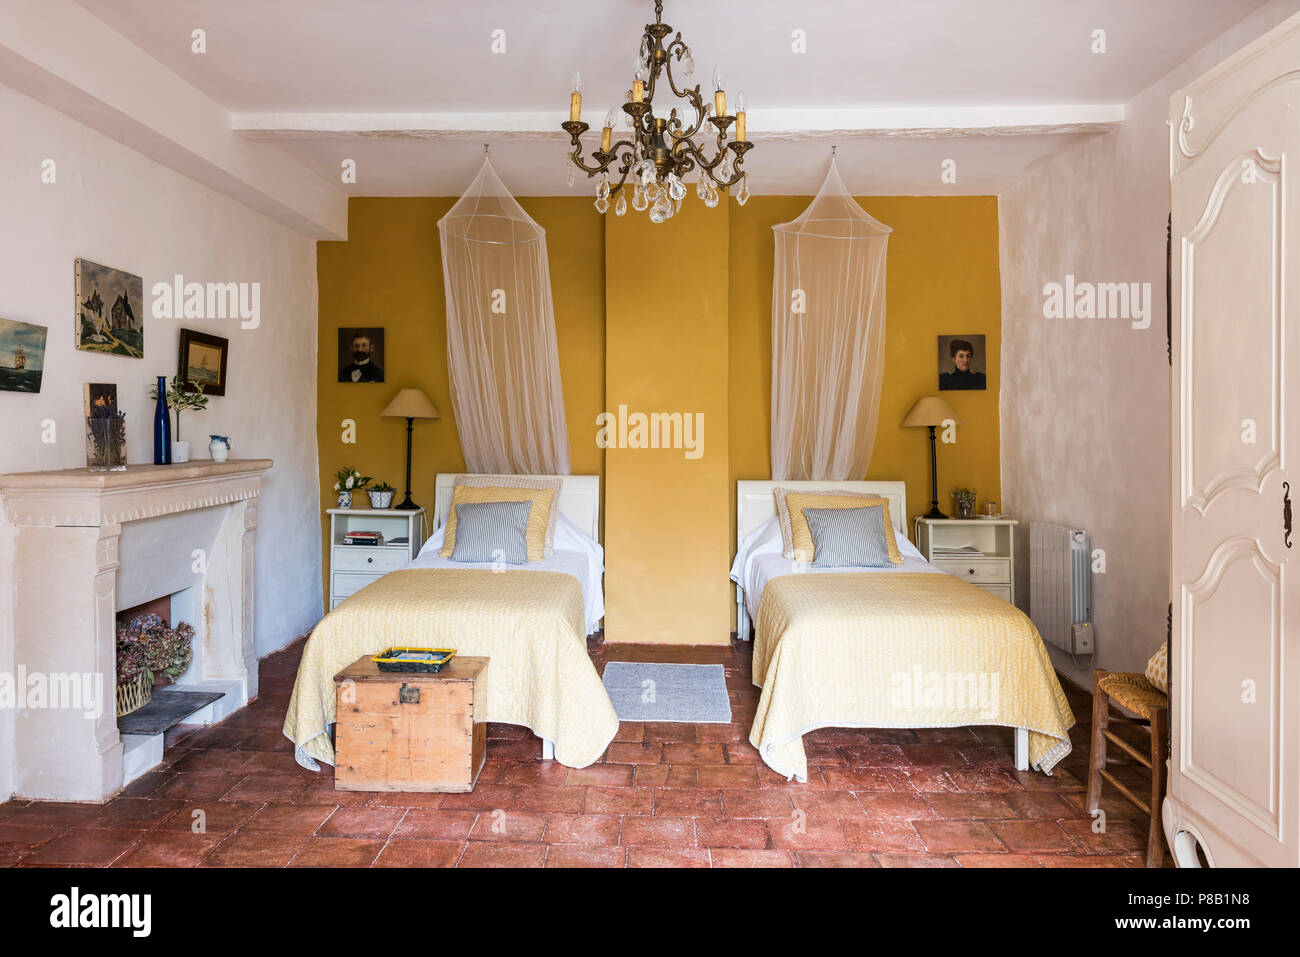 Yellow twin room with 18th century original teracotta tiles - Stock Image